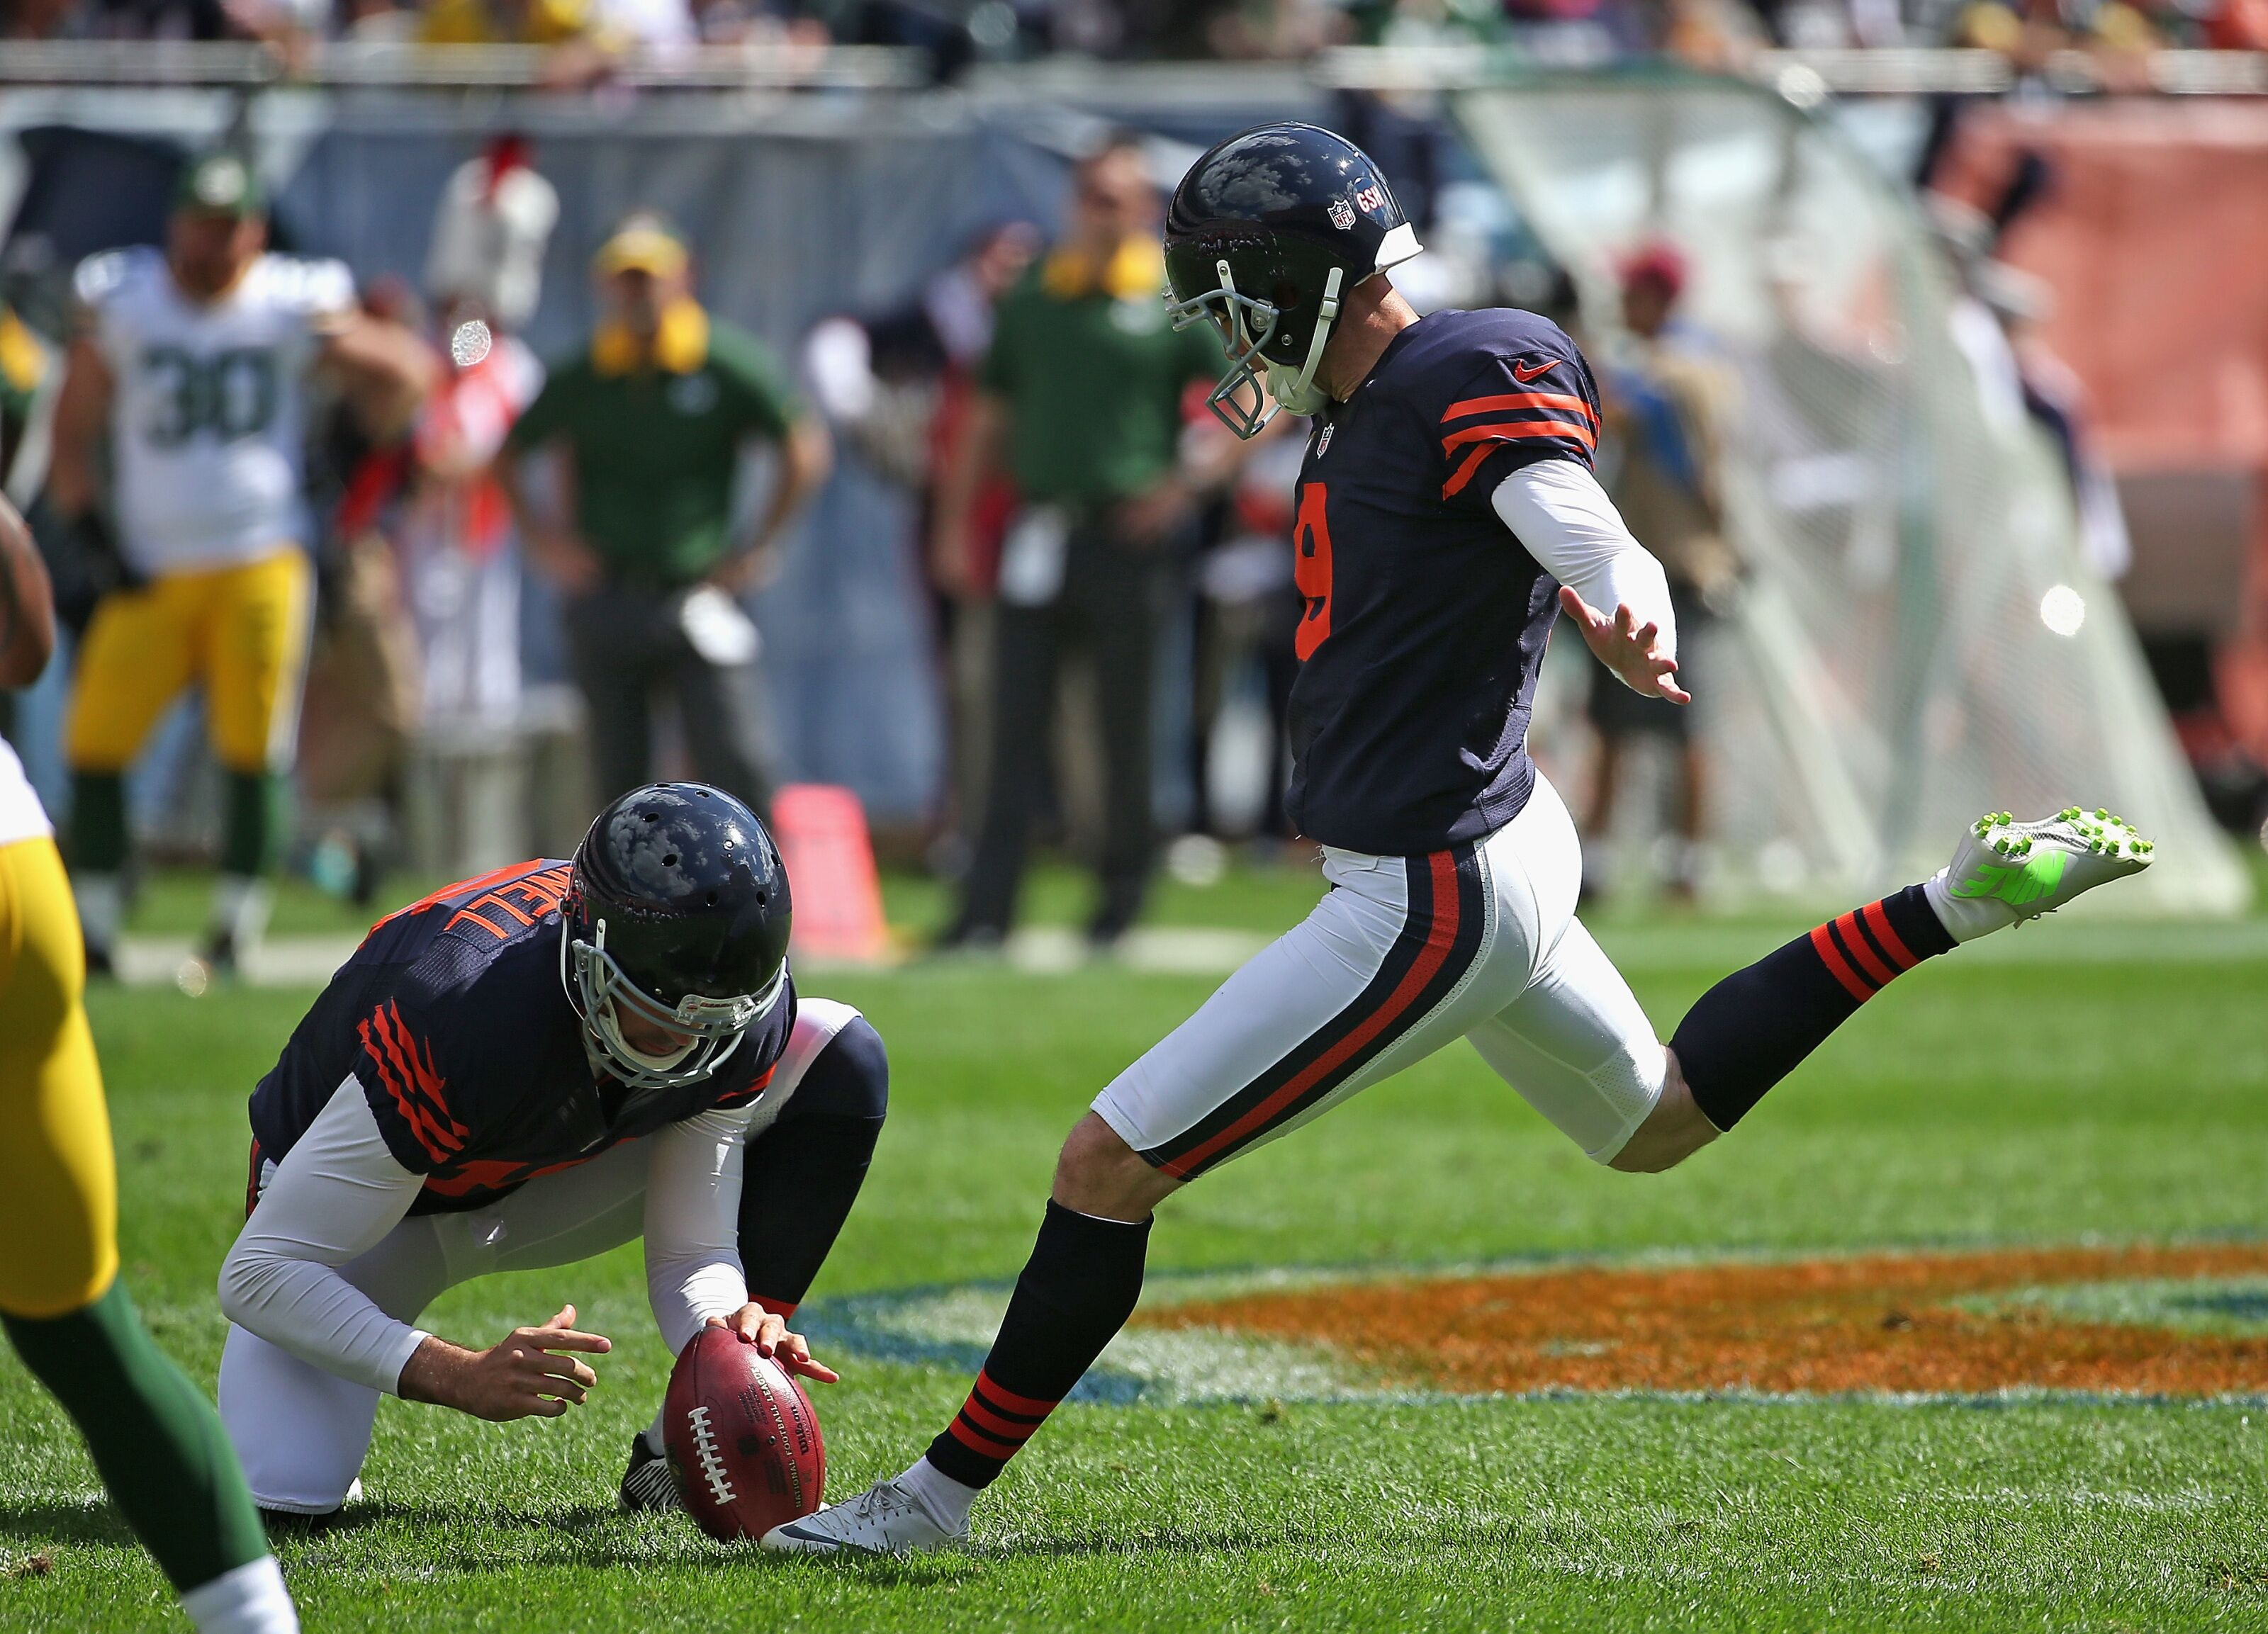 Chicago Bears: Robbie Gould officially out of plans